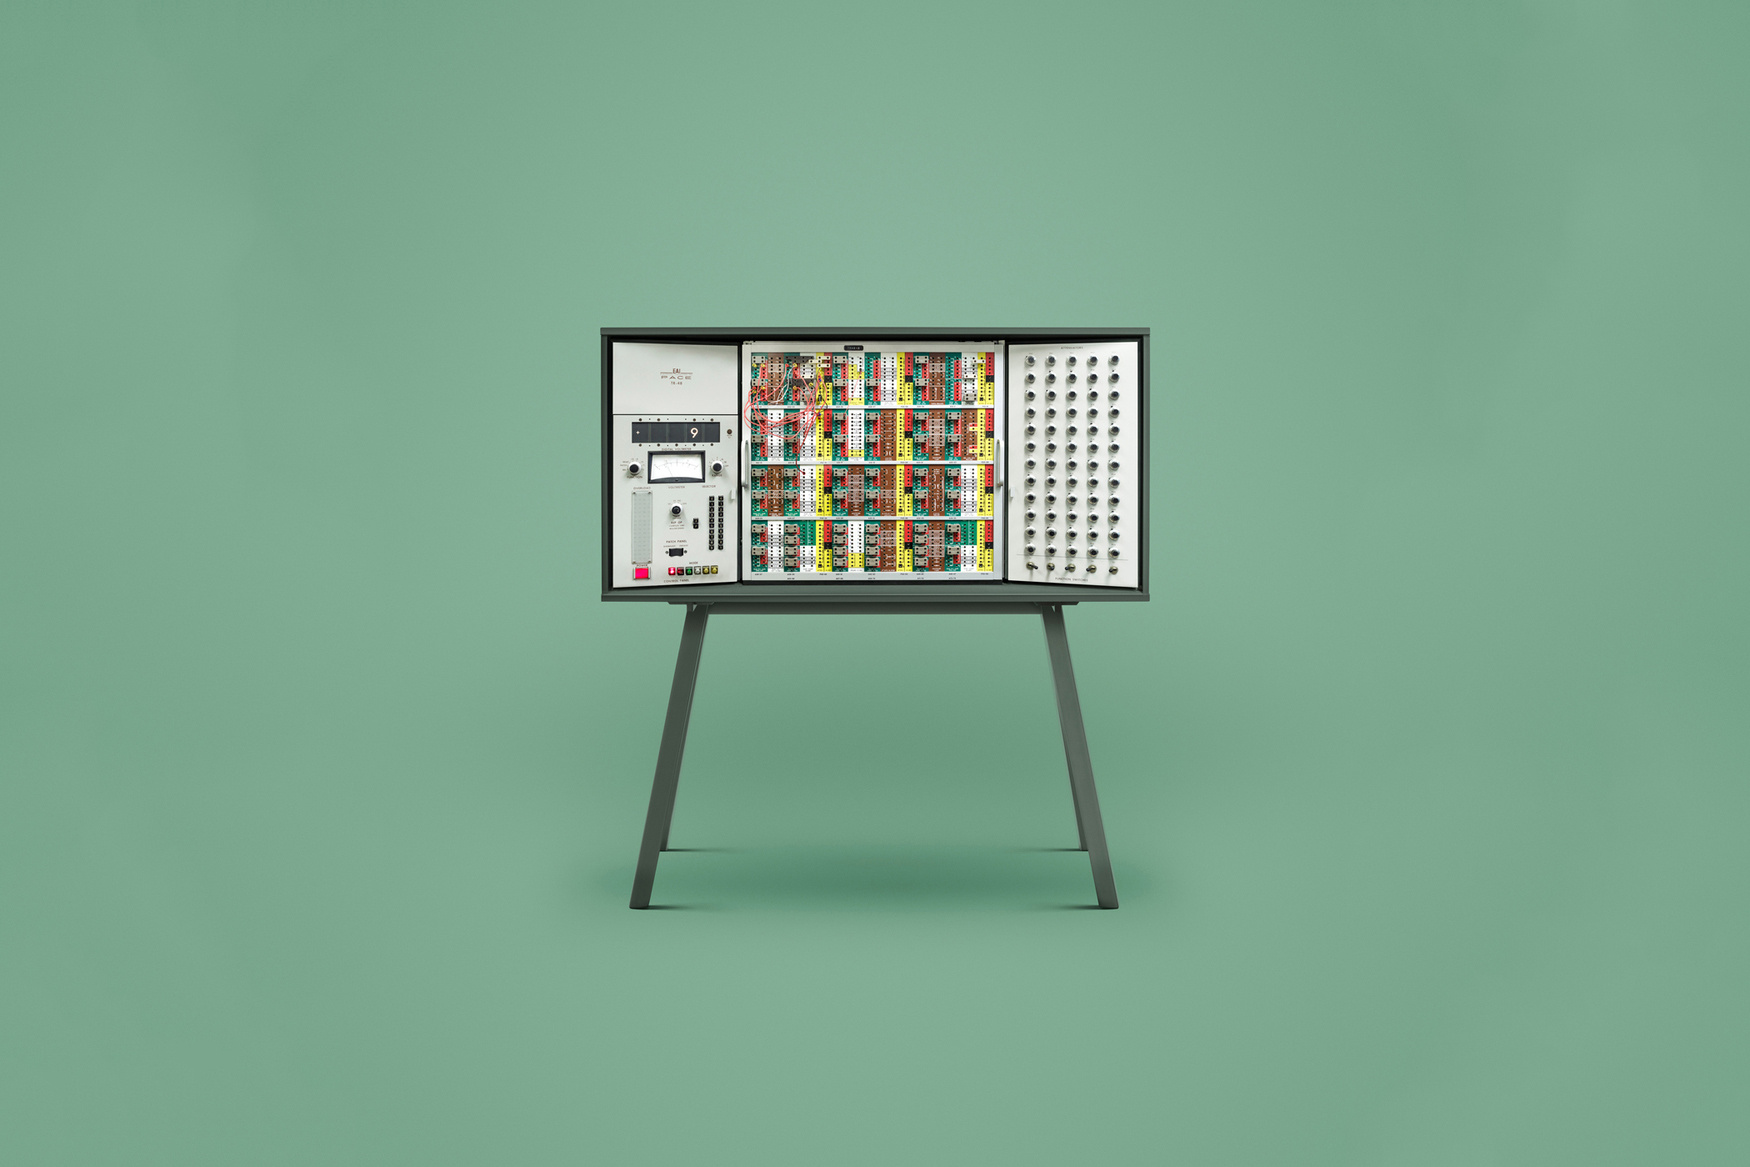 check-out-the-earliest-computers-in-existence-6